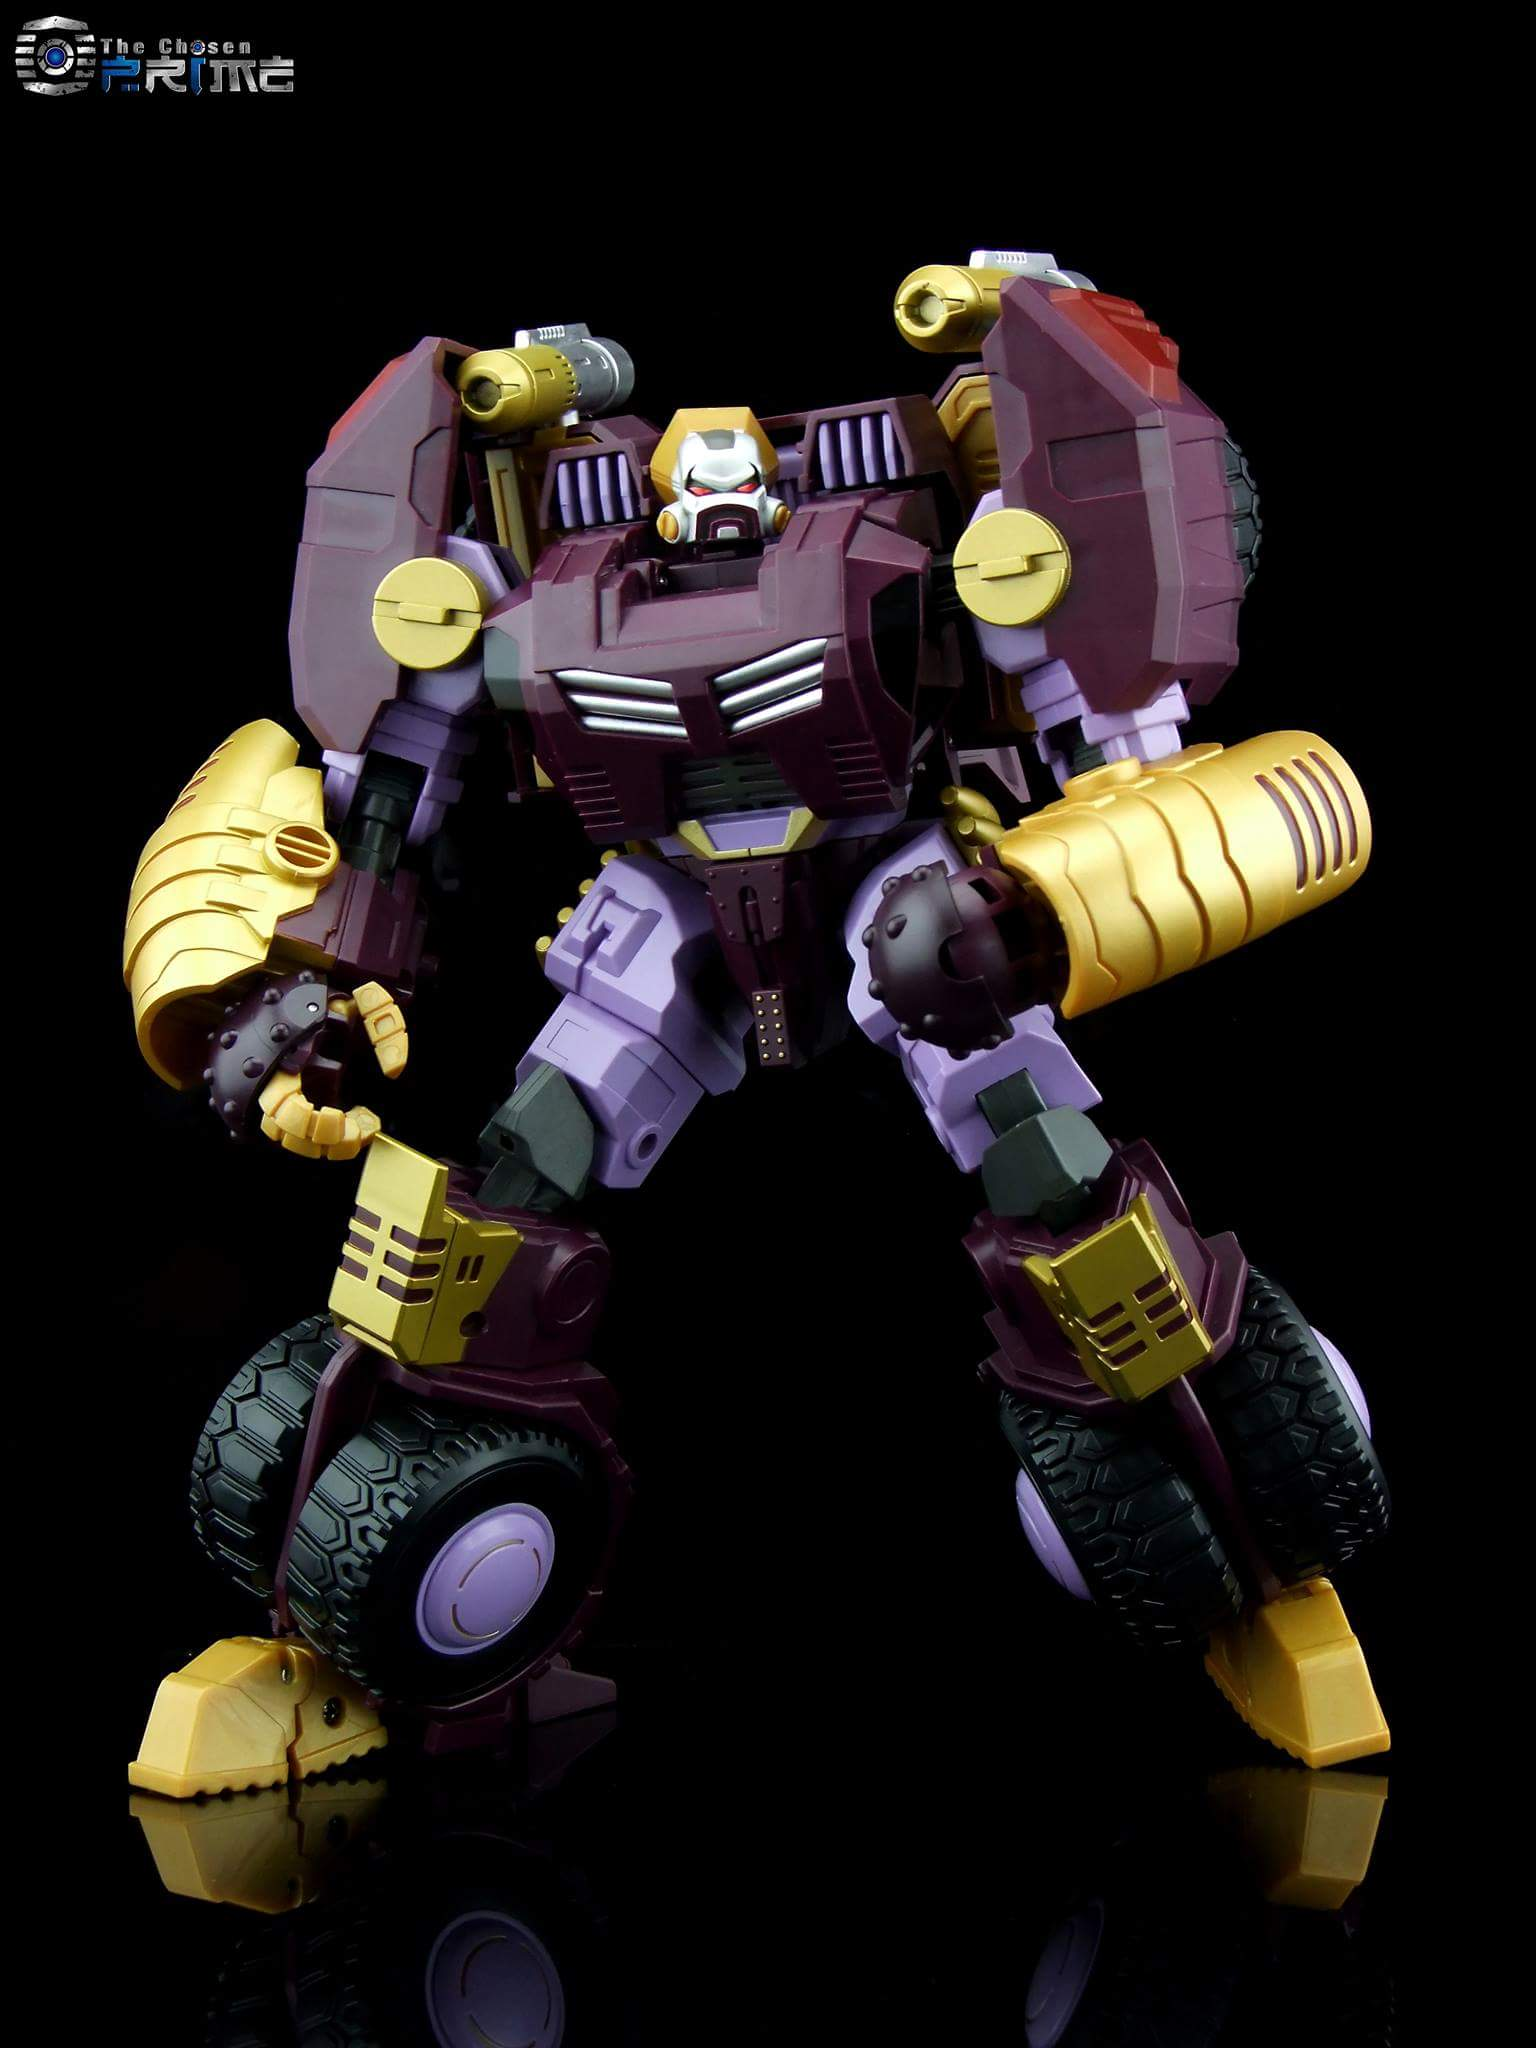 [Mastermind Creations] Produit Tiers - Gamme R - Basé sur Beast Machines Fbh3ixyD